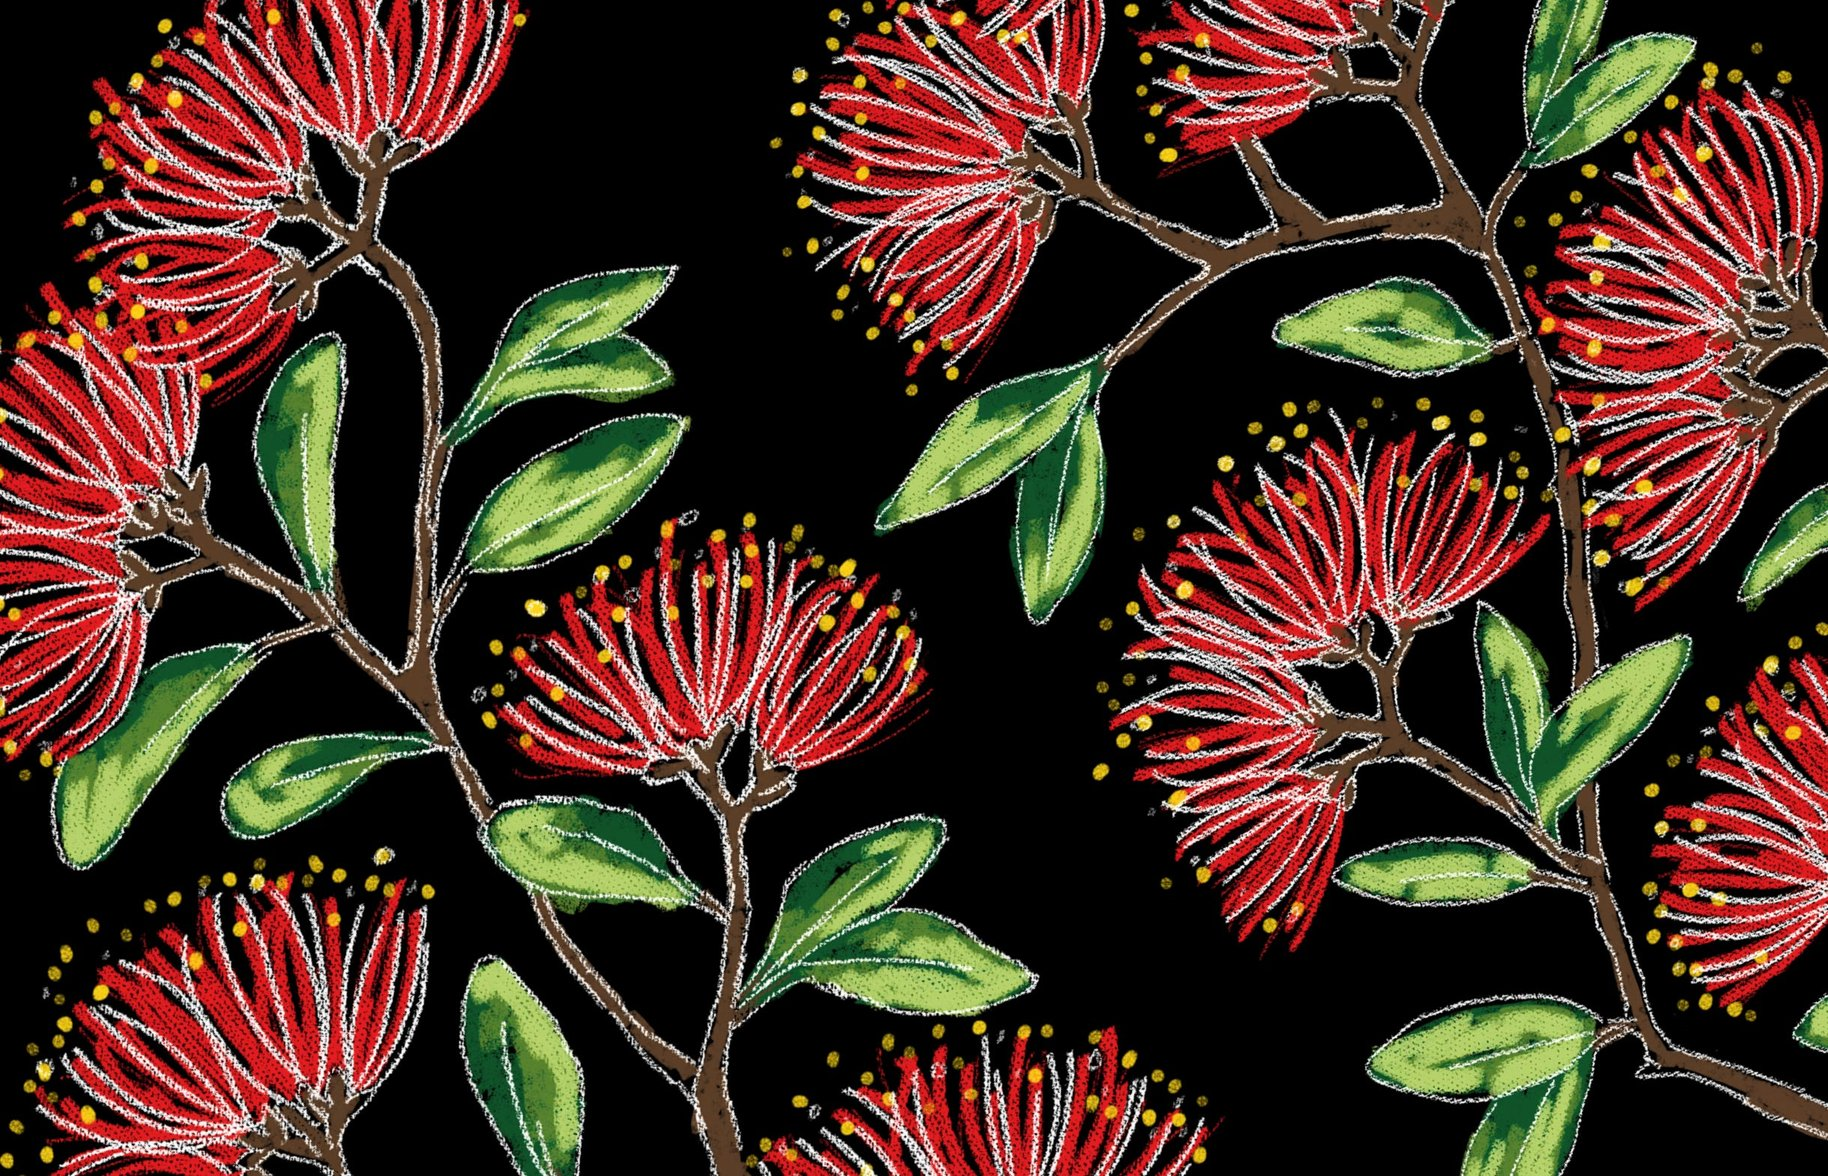 Donovans Chocolate seasonal release pohutukawa illustration